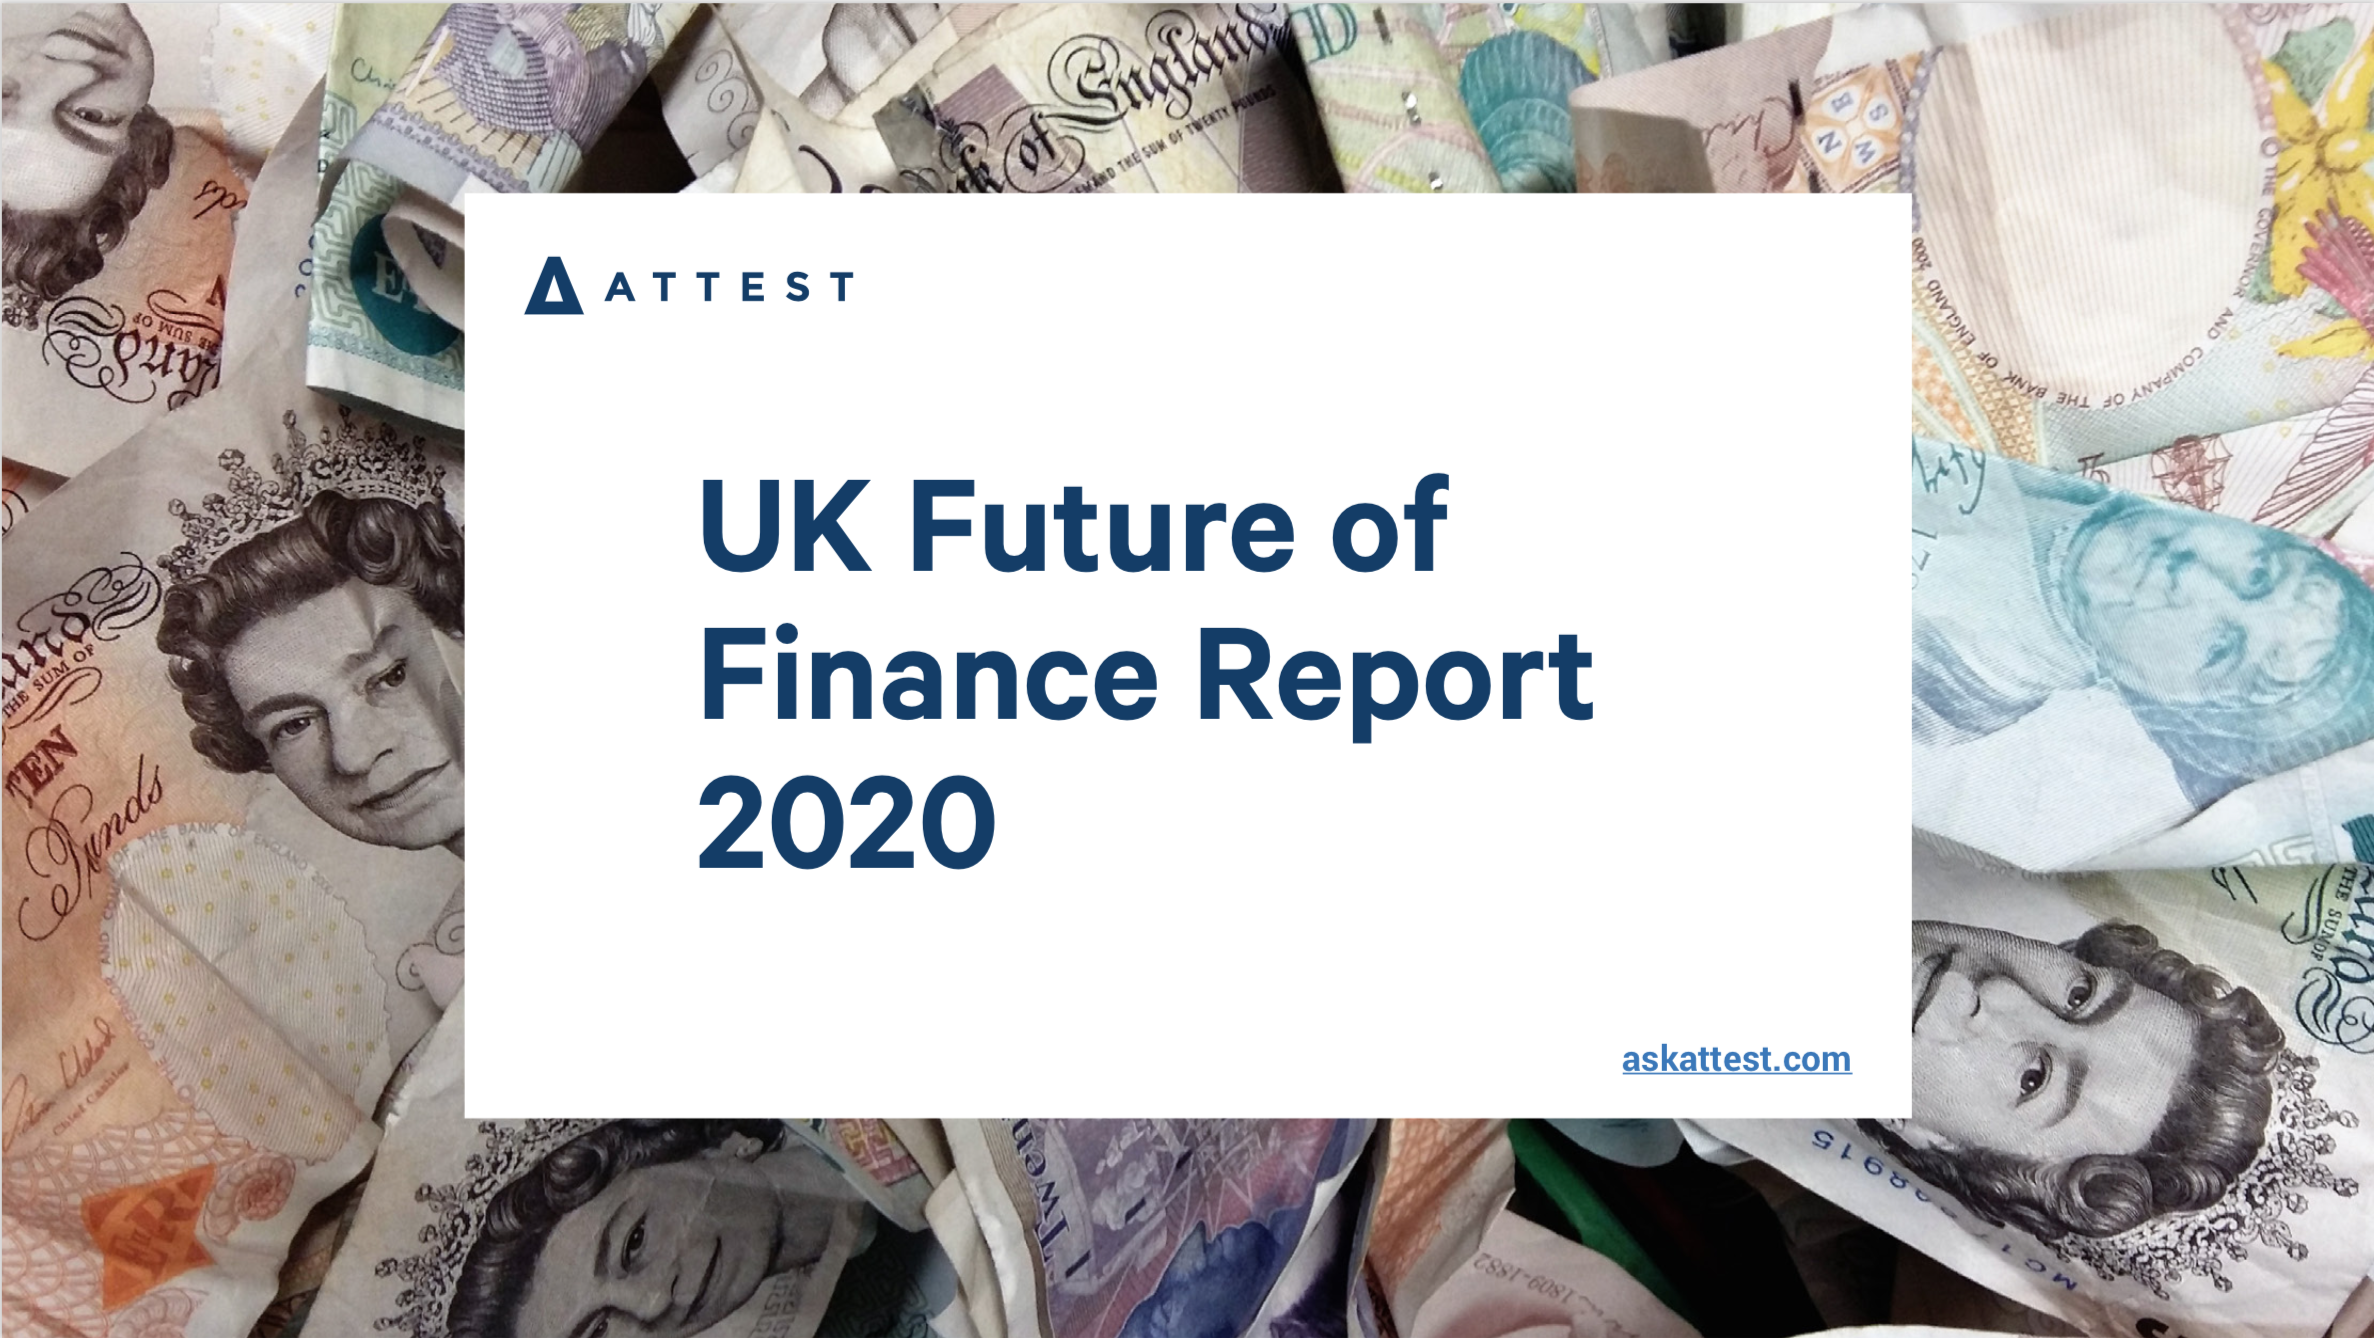 The UK Future of Finance Report 2020